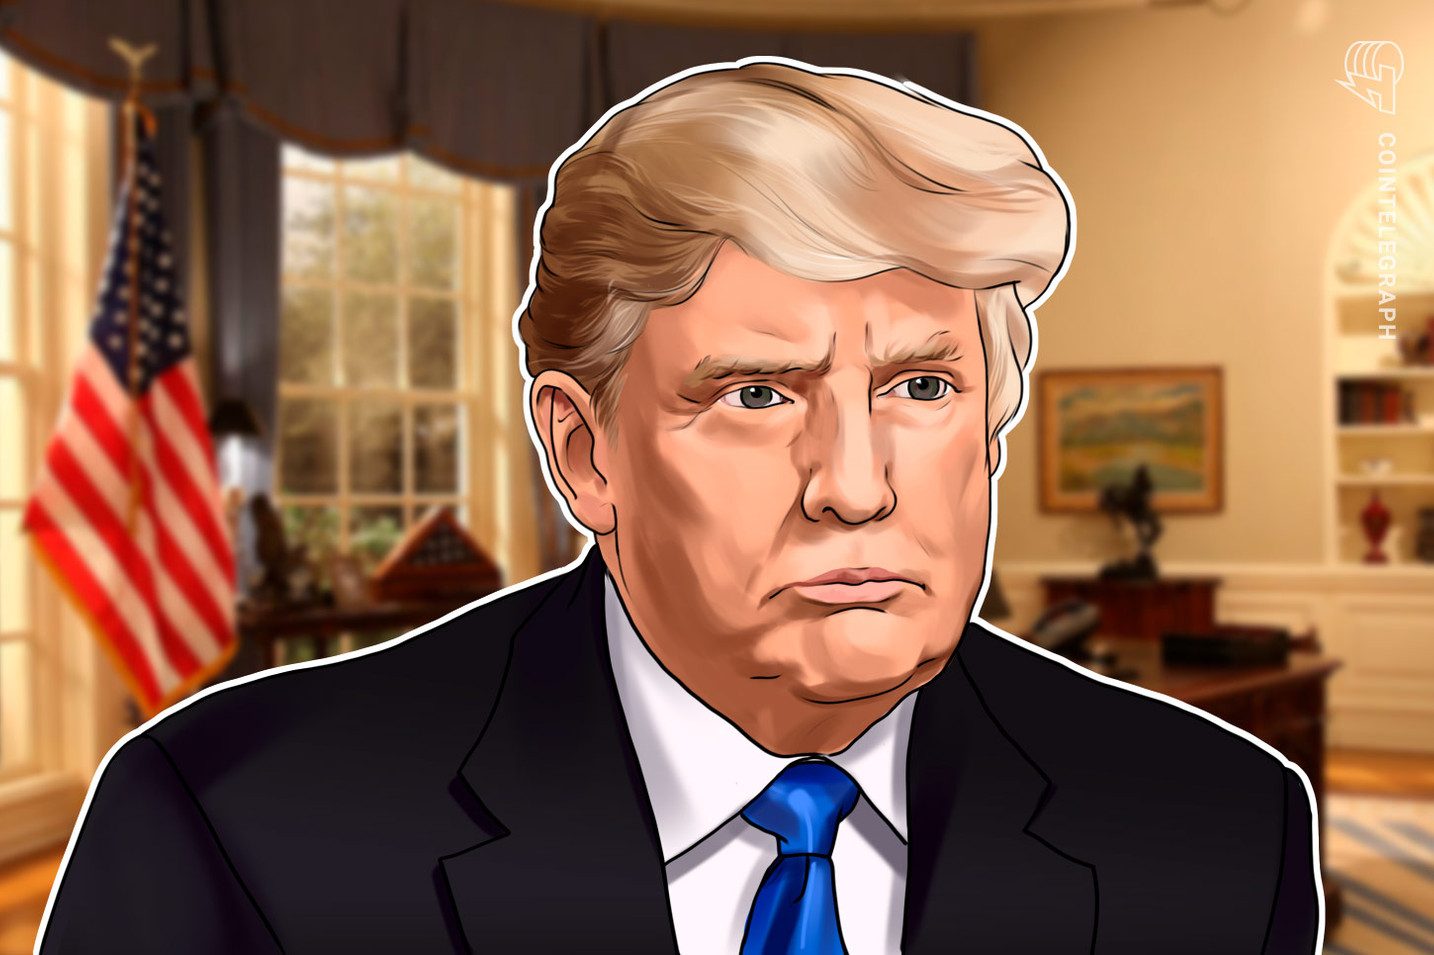 Sources claim 'sympathetic' Trump is considering pardon for Silk Road founder